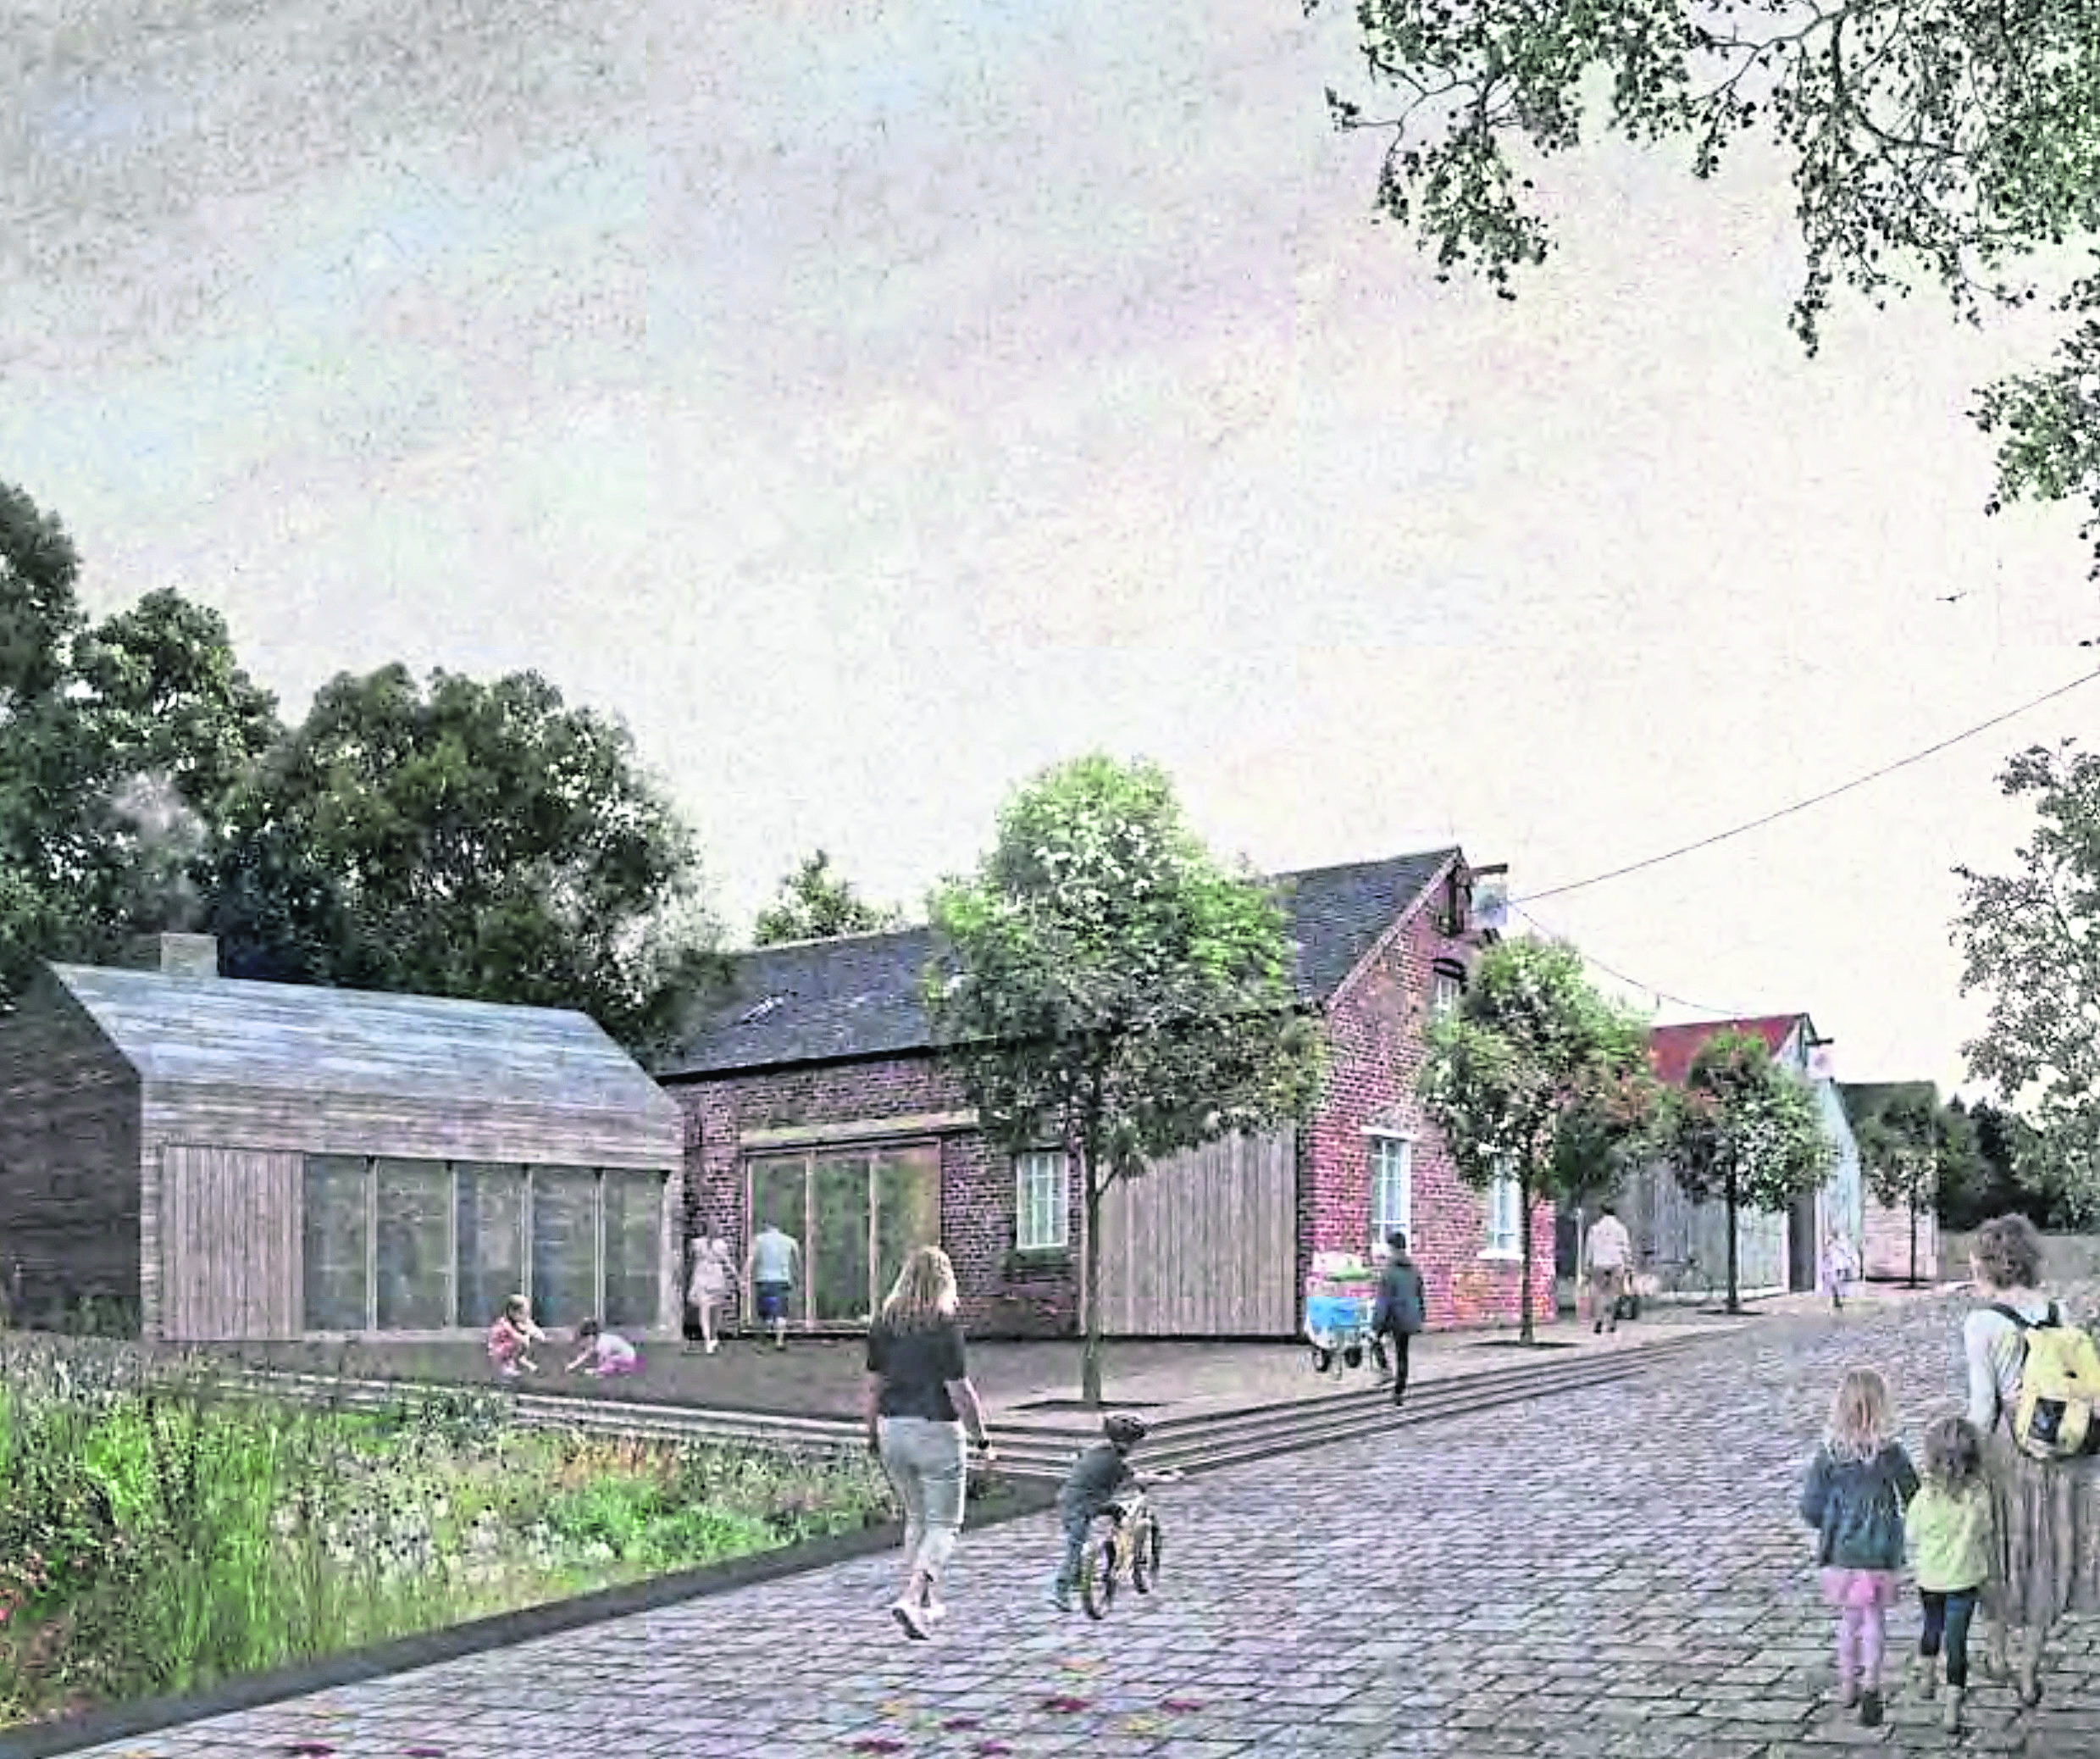 Designs of Burr's Stores redevelopment.